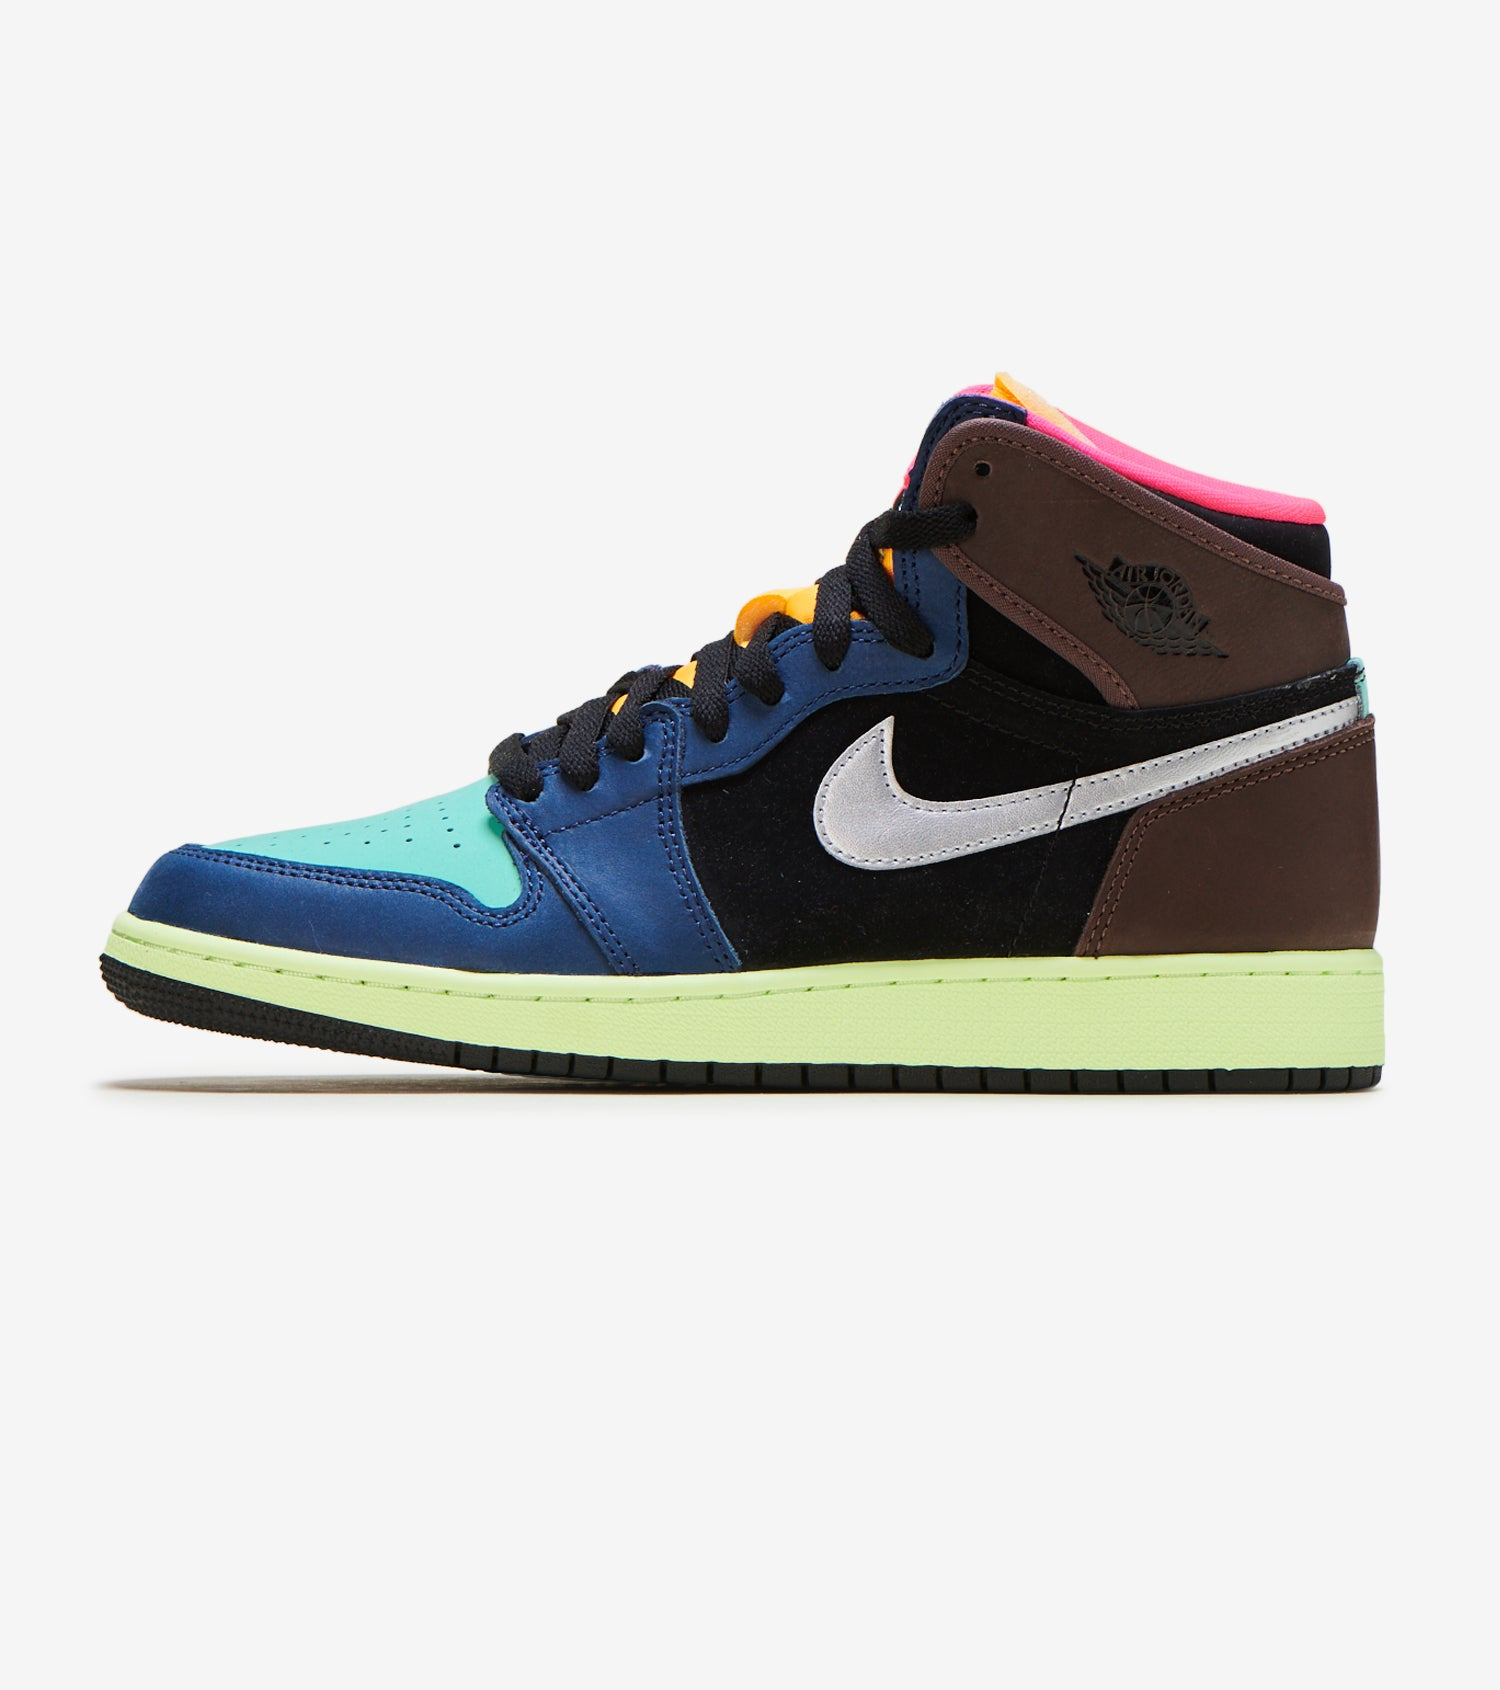 "Air Jordan 1 Retro High OG ""Tokyo Bio Hack"" - Grade School Shoe"